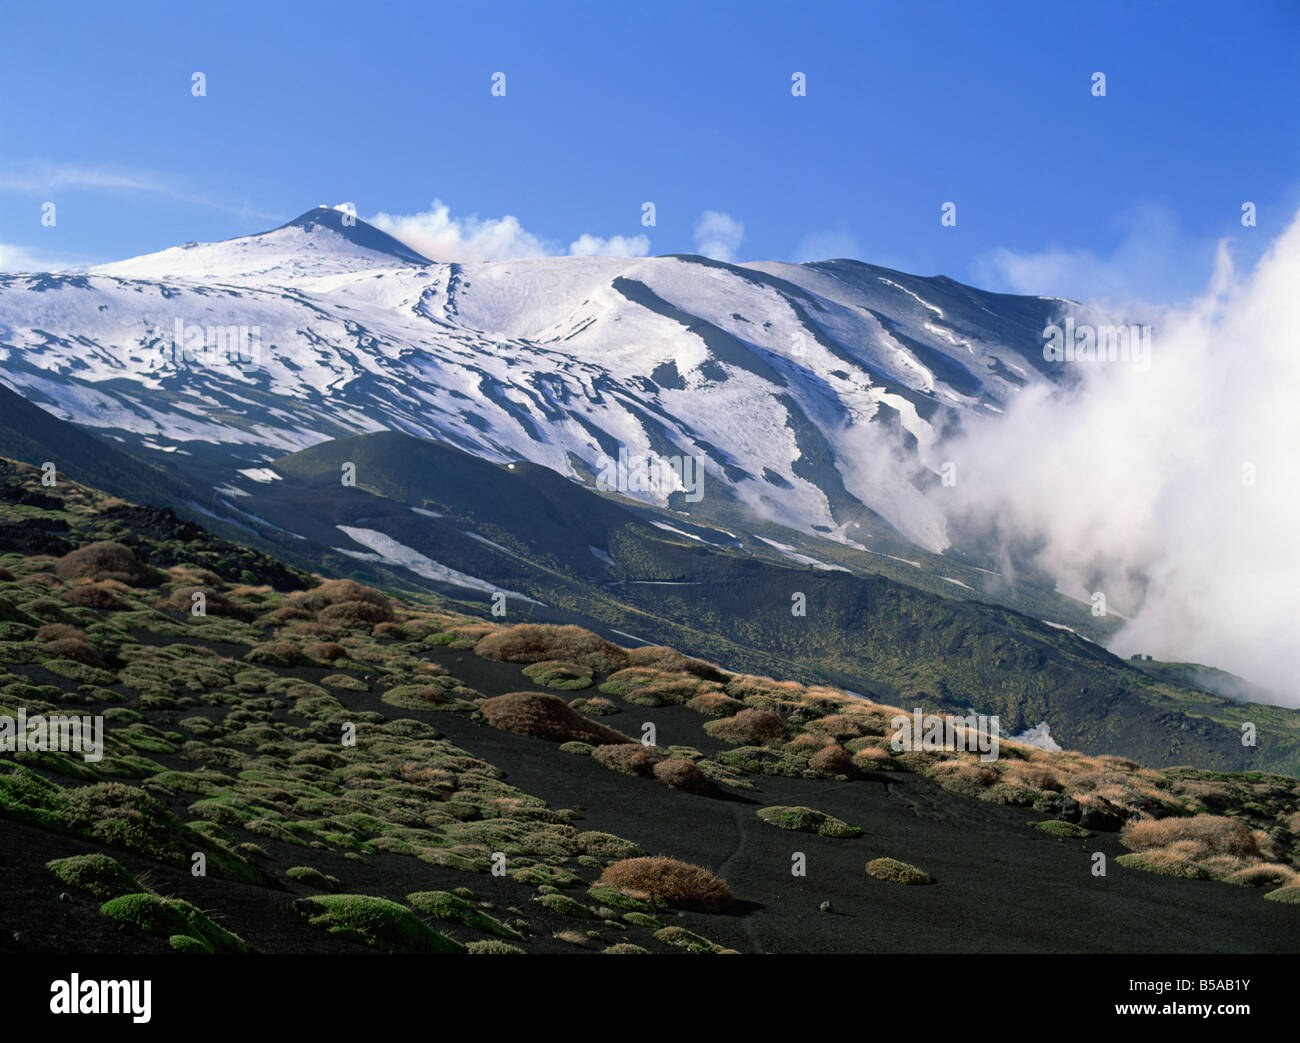 Clumps of thorn amid lava fields on northern slopes of Mount Etna Sicily Italy Europe - Stock Image